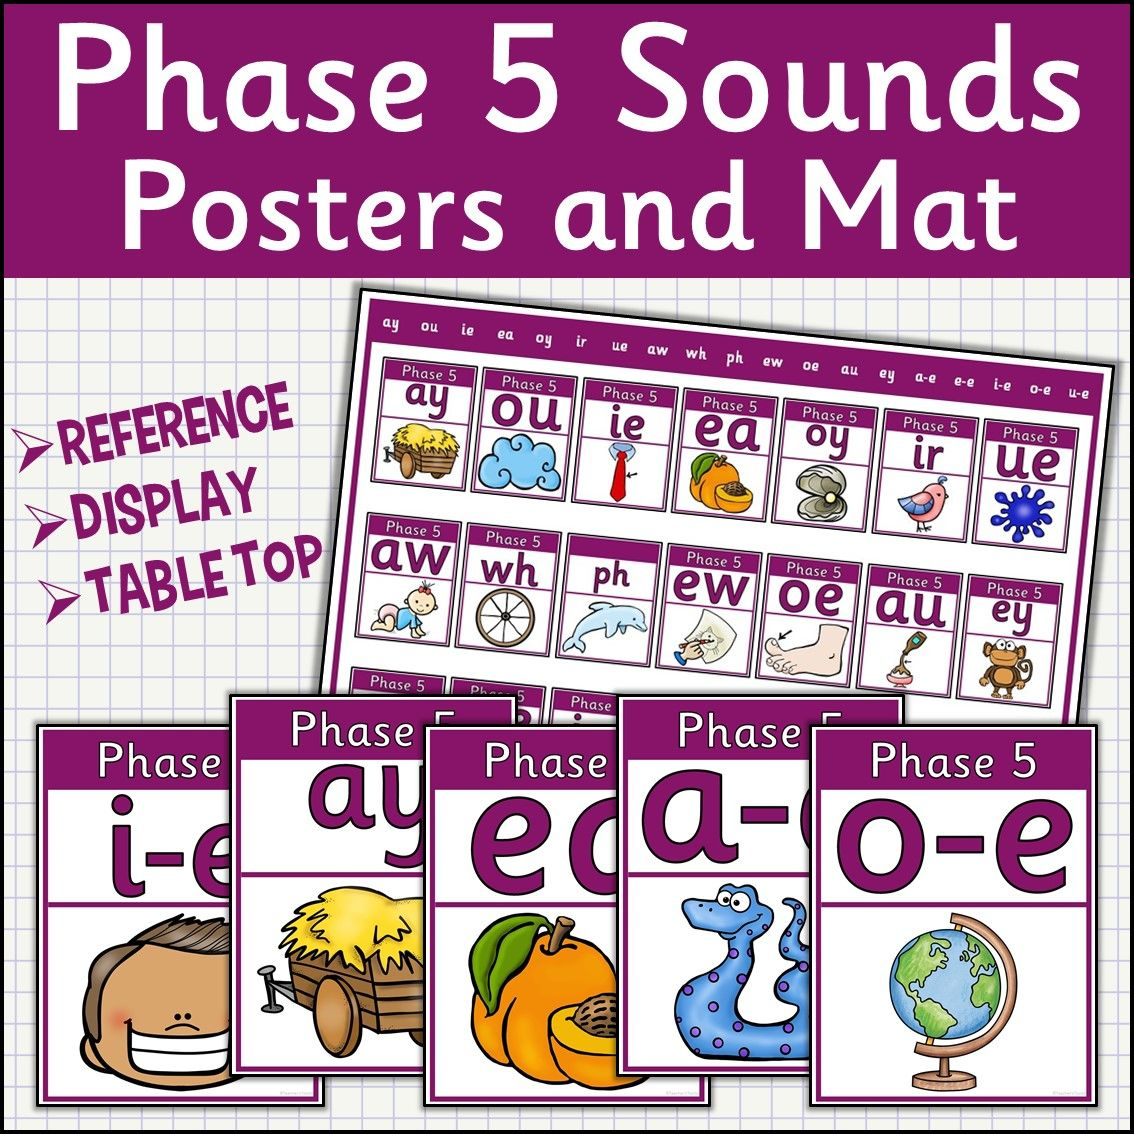 Phase 5 Sounds Posters And Mat